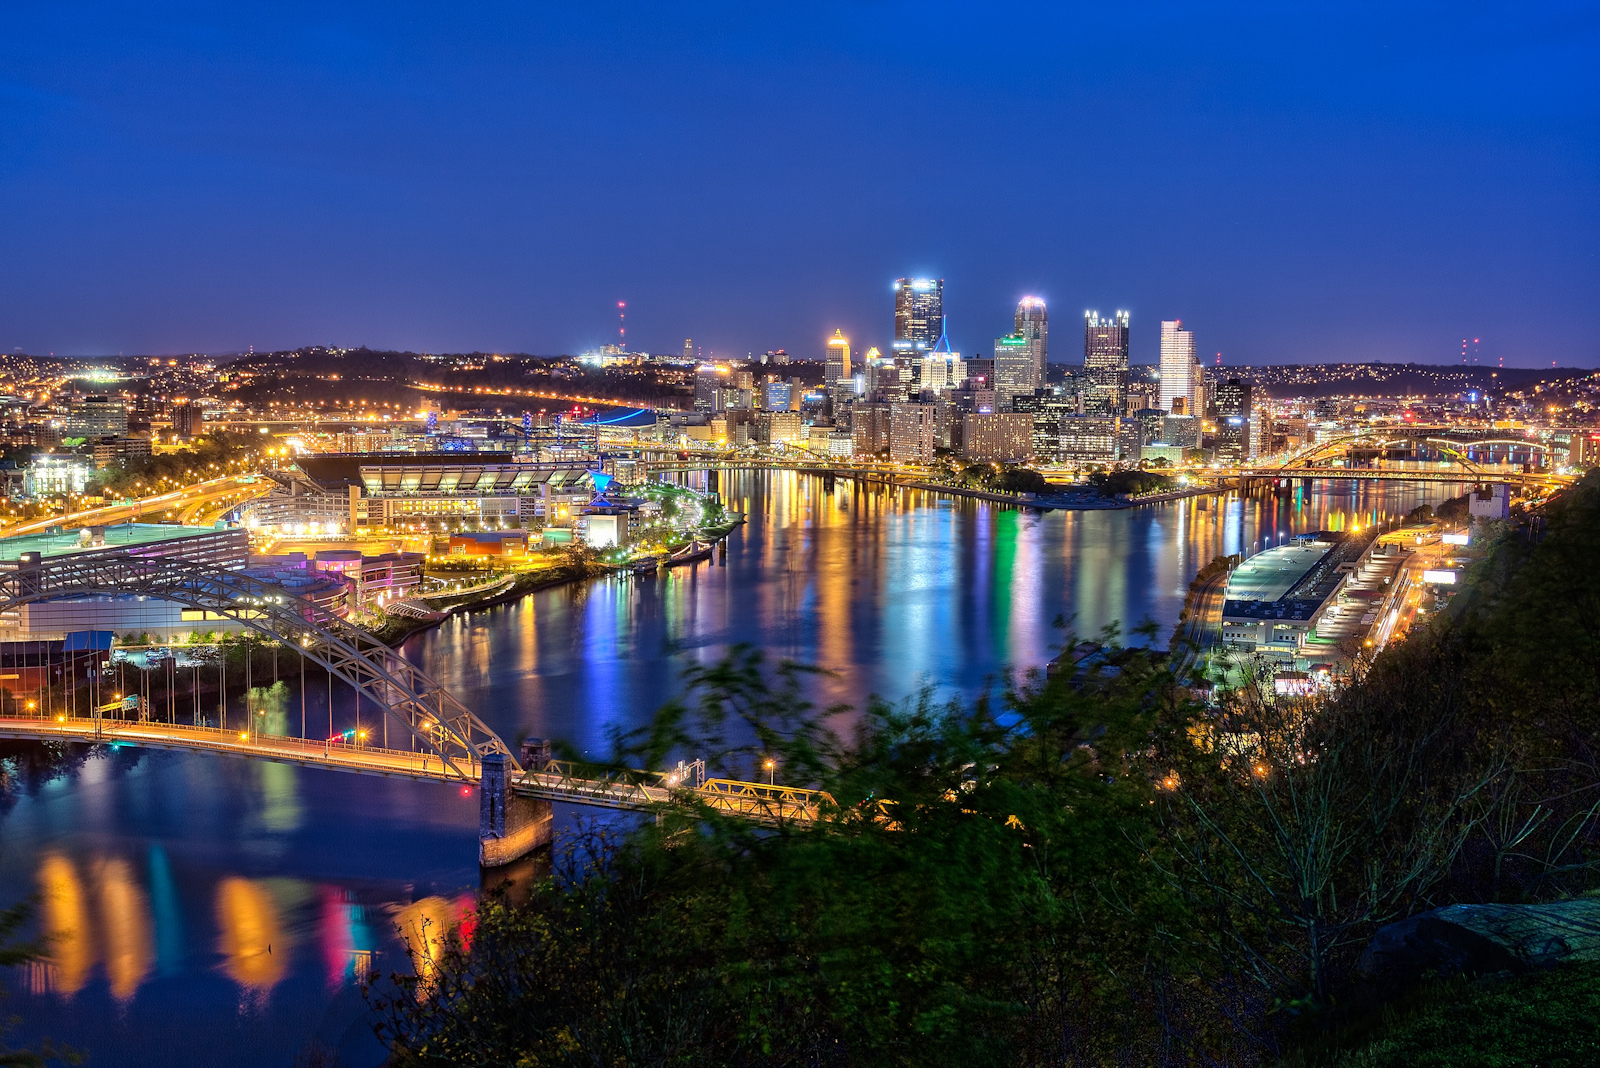 Xe88 slot game